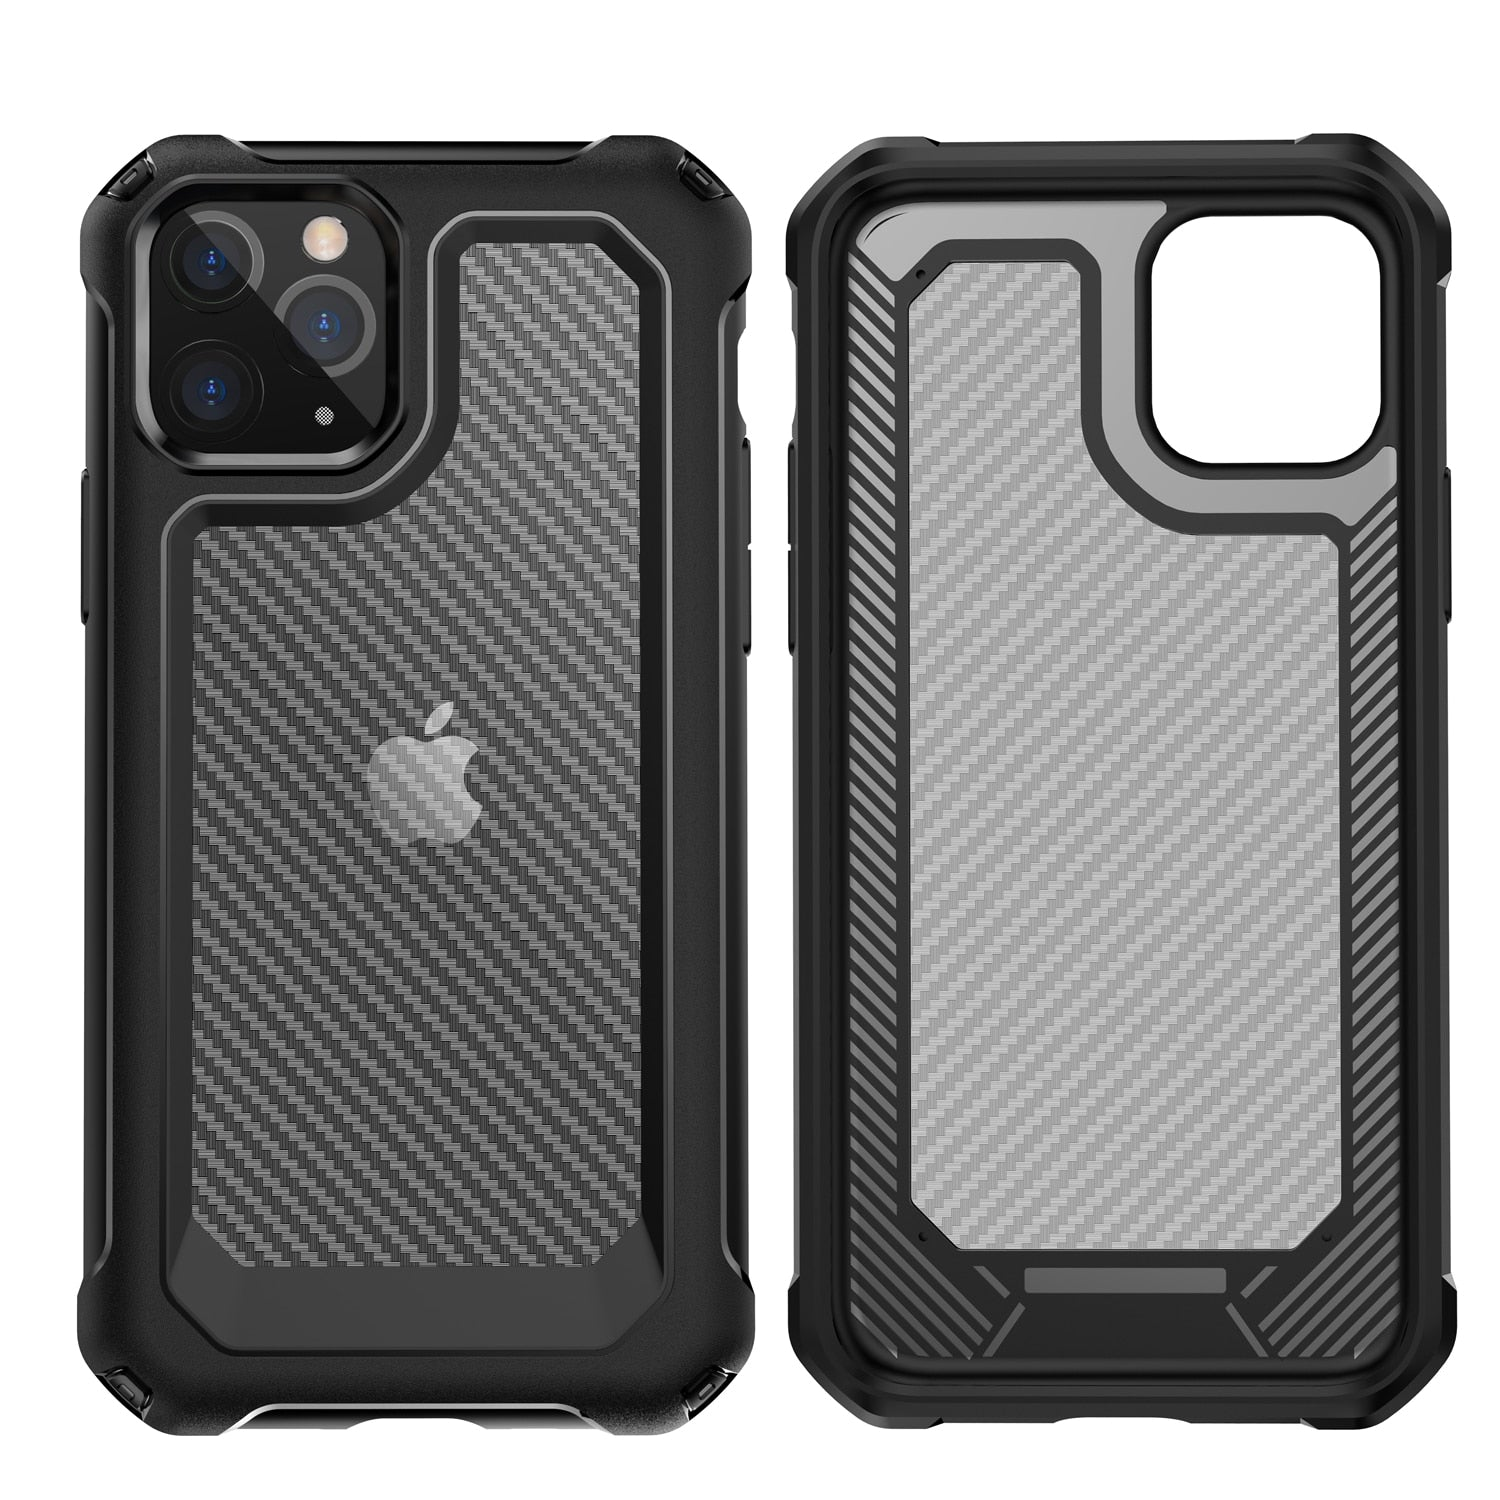 Ultra Protective Full Body Armor Case For iPhone iPhone 11, 11 Pro, 11 Pro Max, X, XS, XR, XS Max, 8 Plus, 7, iPhone SE 2020 Carbon Fiber Bayer PU Shockproof Case